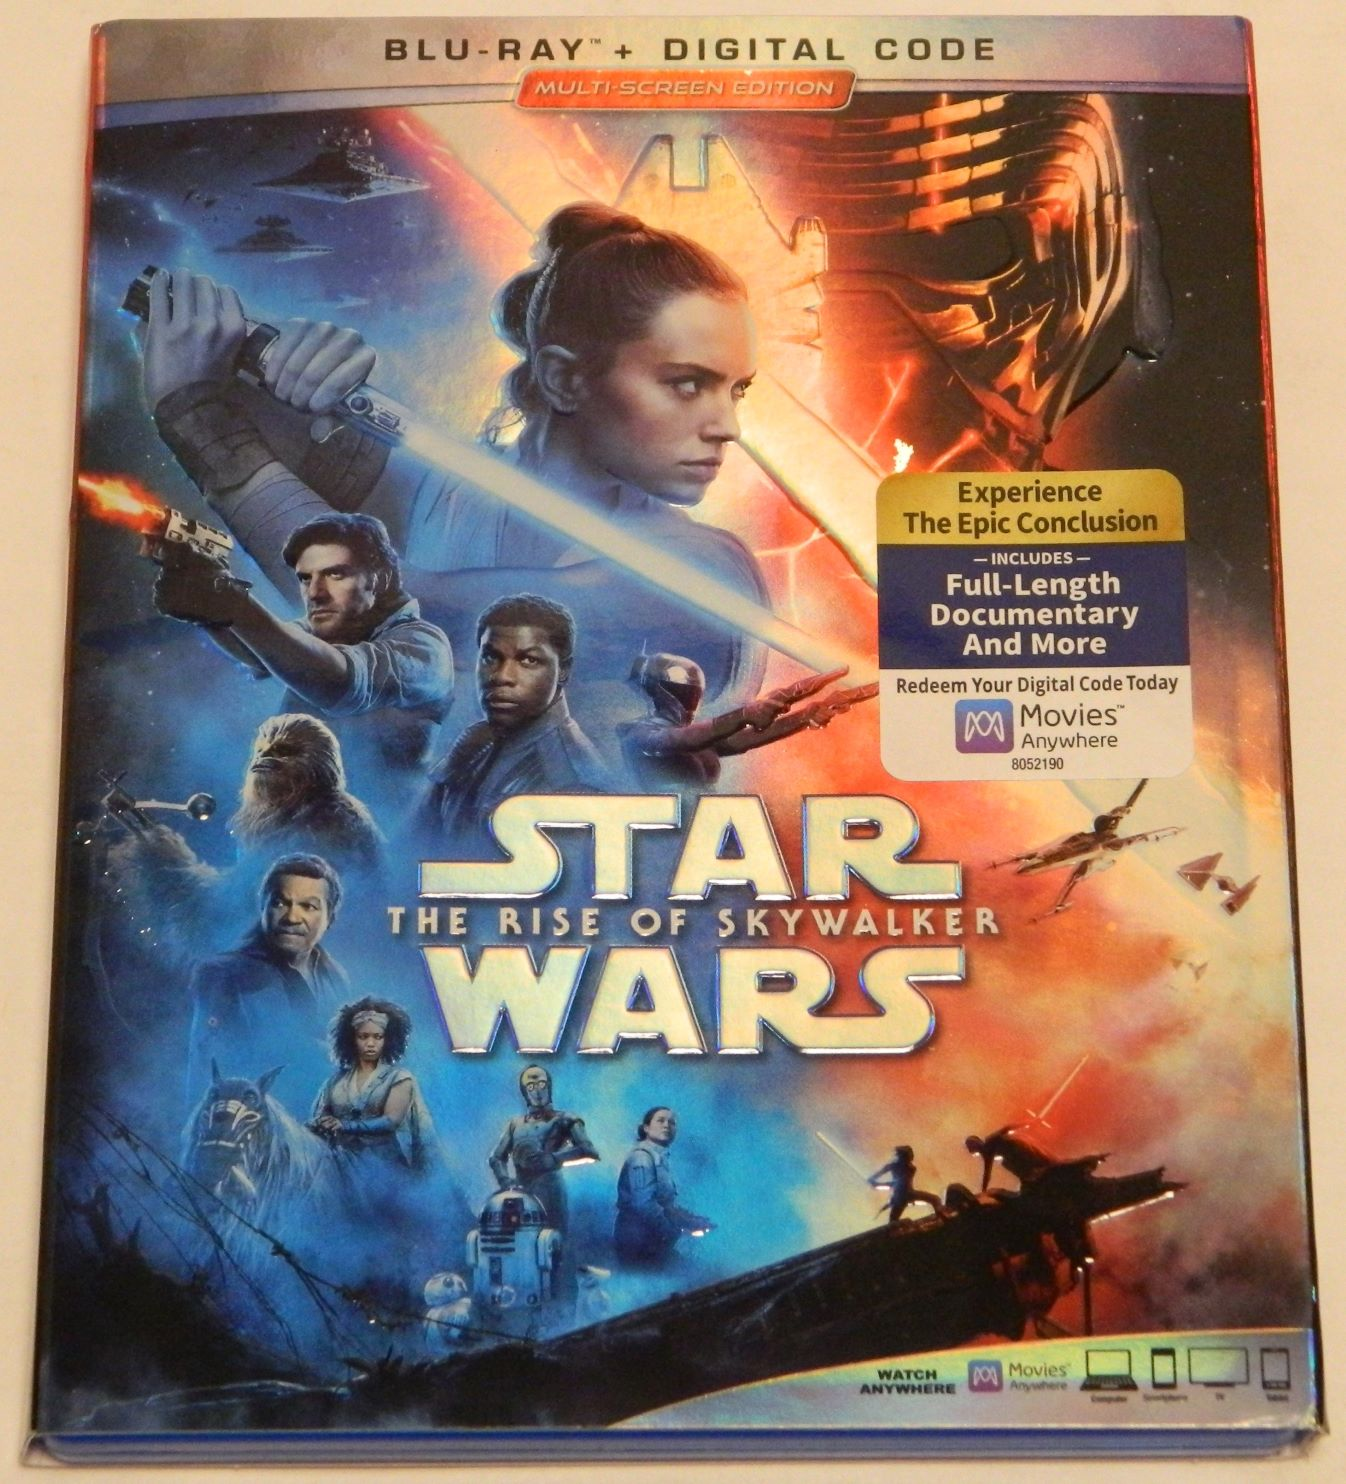 Star Wars: The Rise of Skywalker Blu-ray